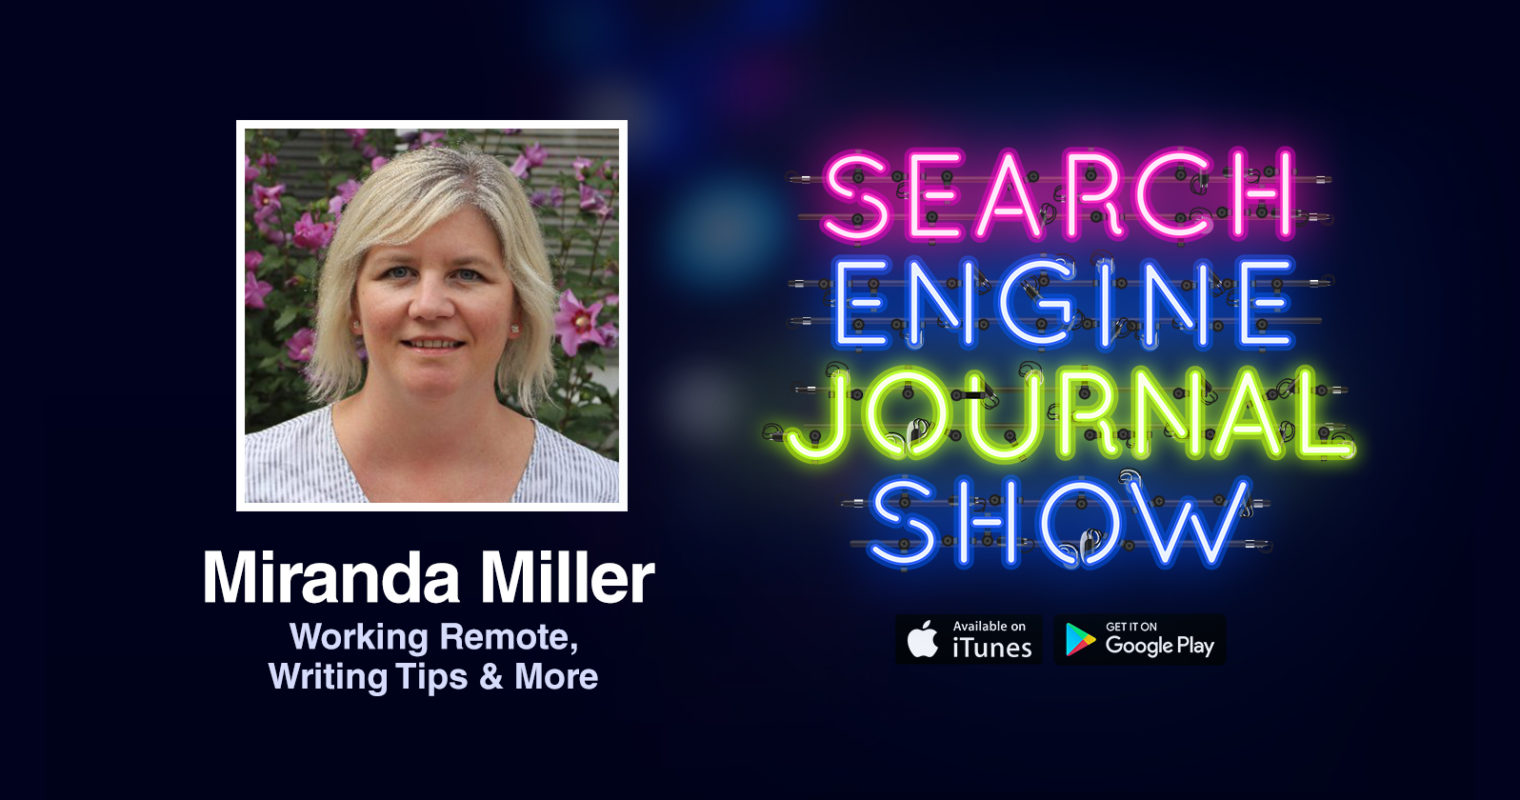 Working Remote During COVID-19, Content Writing Tips & More with Miranda Miller [PODCAST]